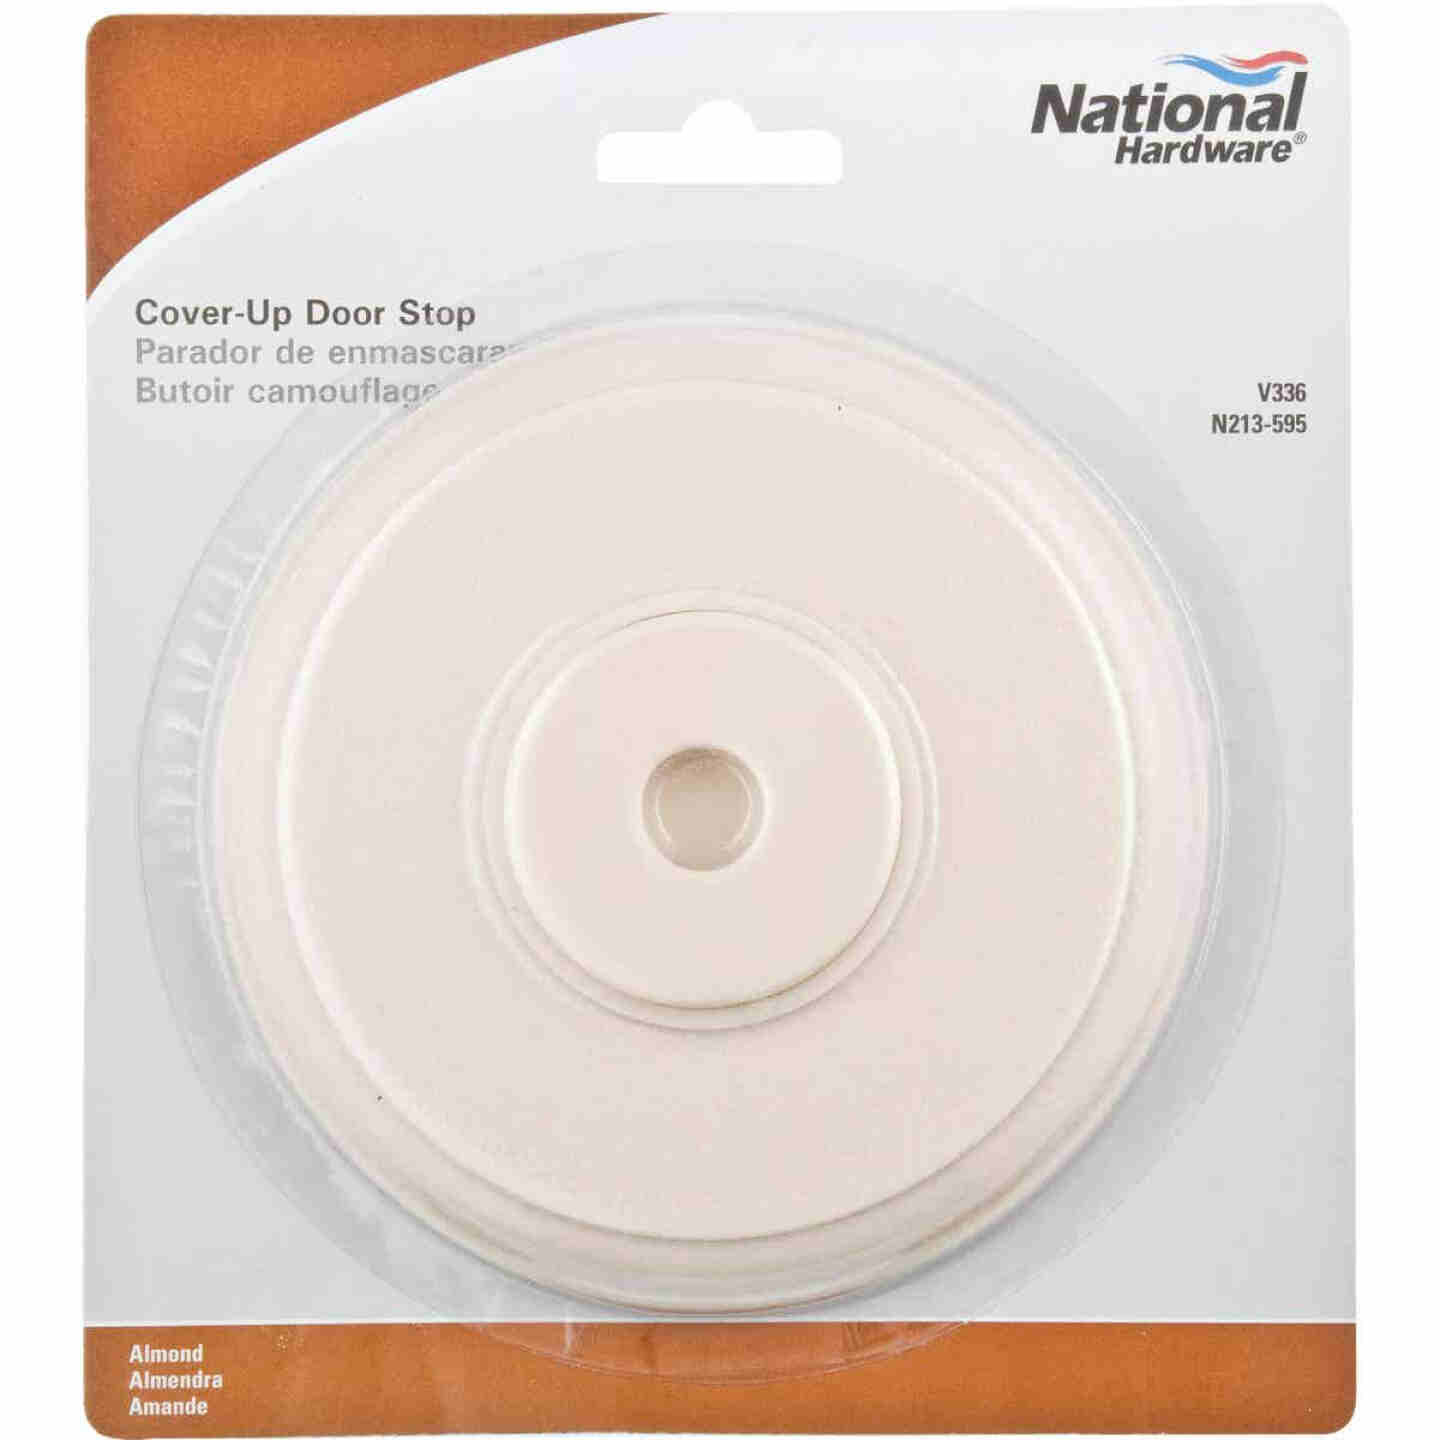 National 336 5 In. Almond Softstop Cover-Up Wall Door Stop Image 2